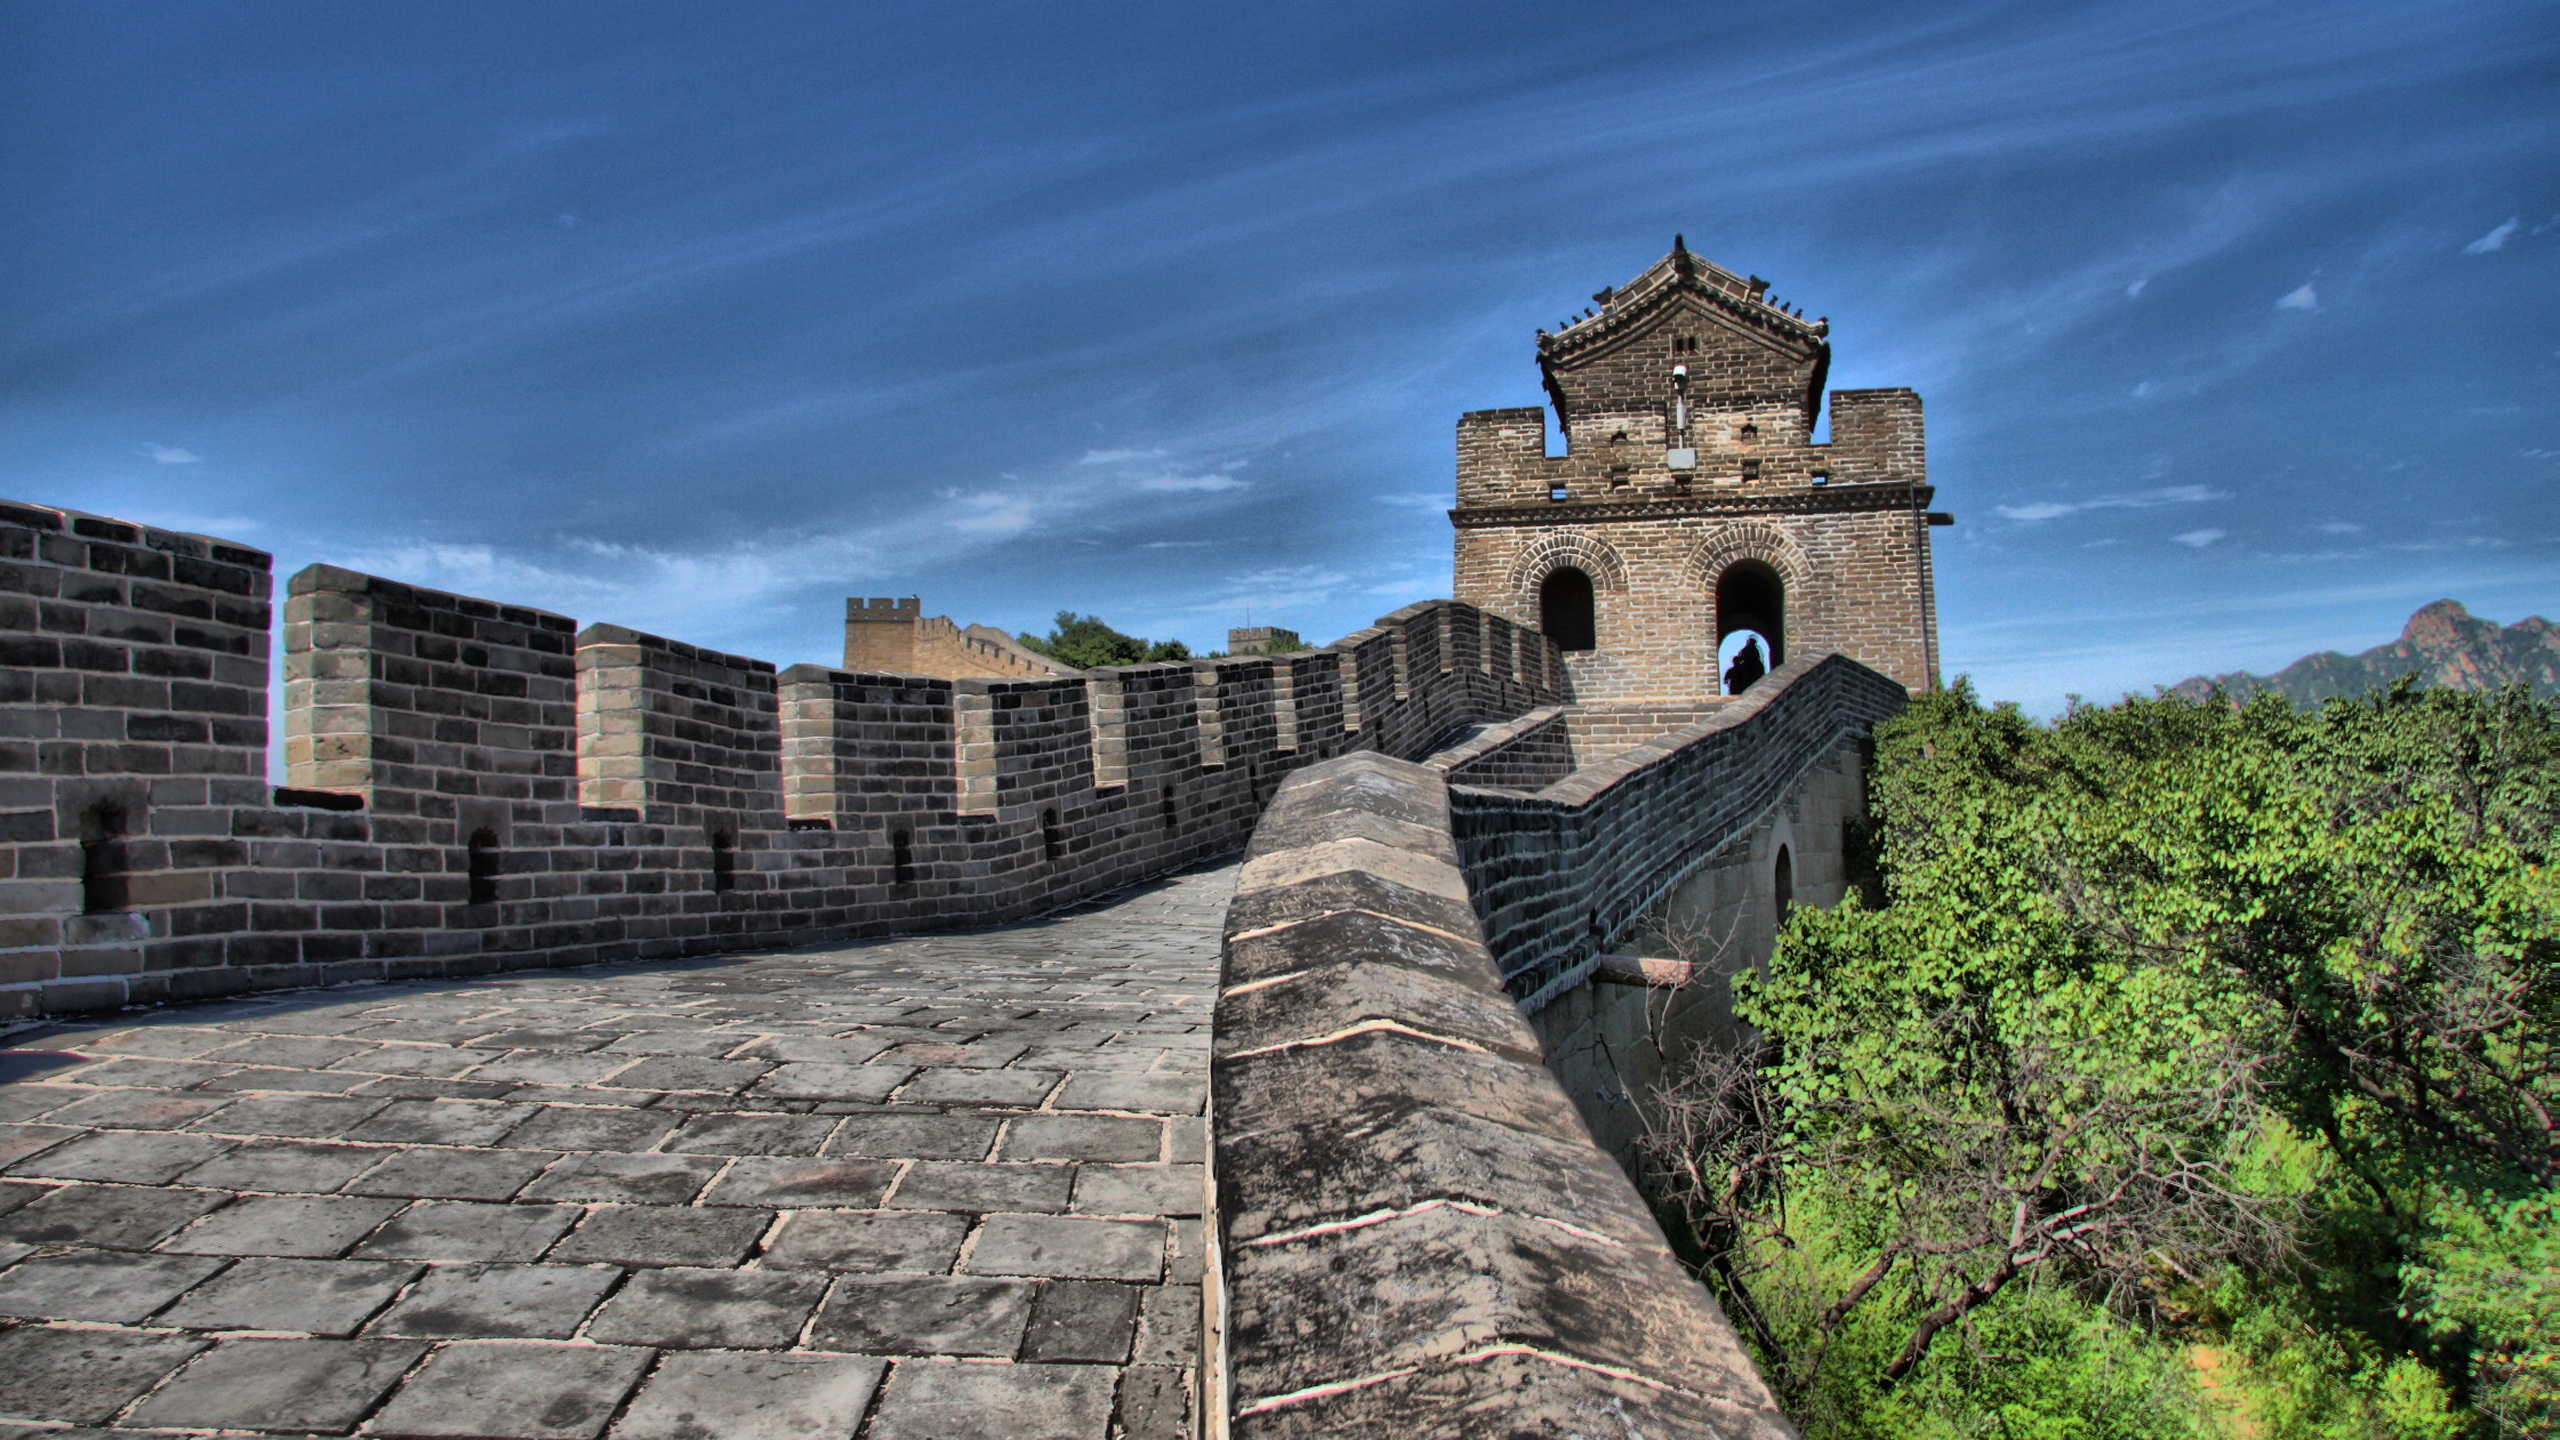 a description of the great wall of china as a wall that was built during the chin dynasty The great wall of china was built with all kinds wwwwriteworkcom/essay/great-wall-china-4 of china is a wall that was built during the chin dynasty.